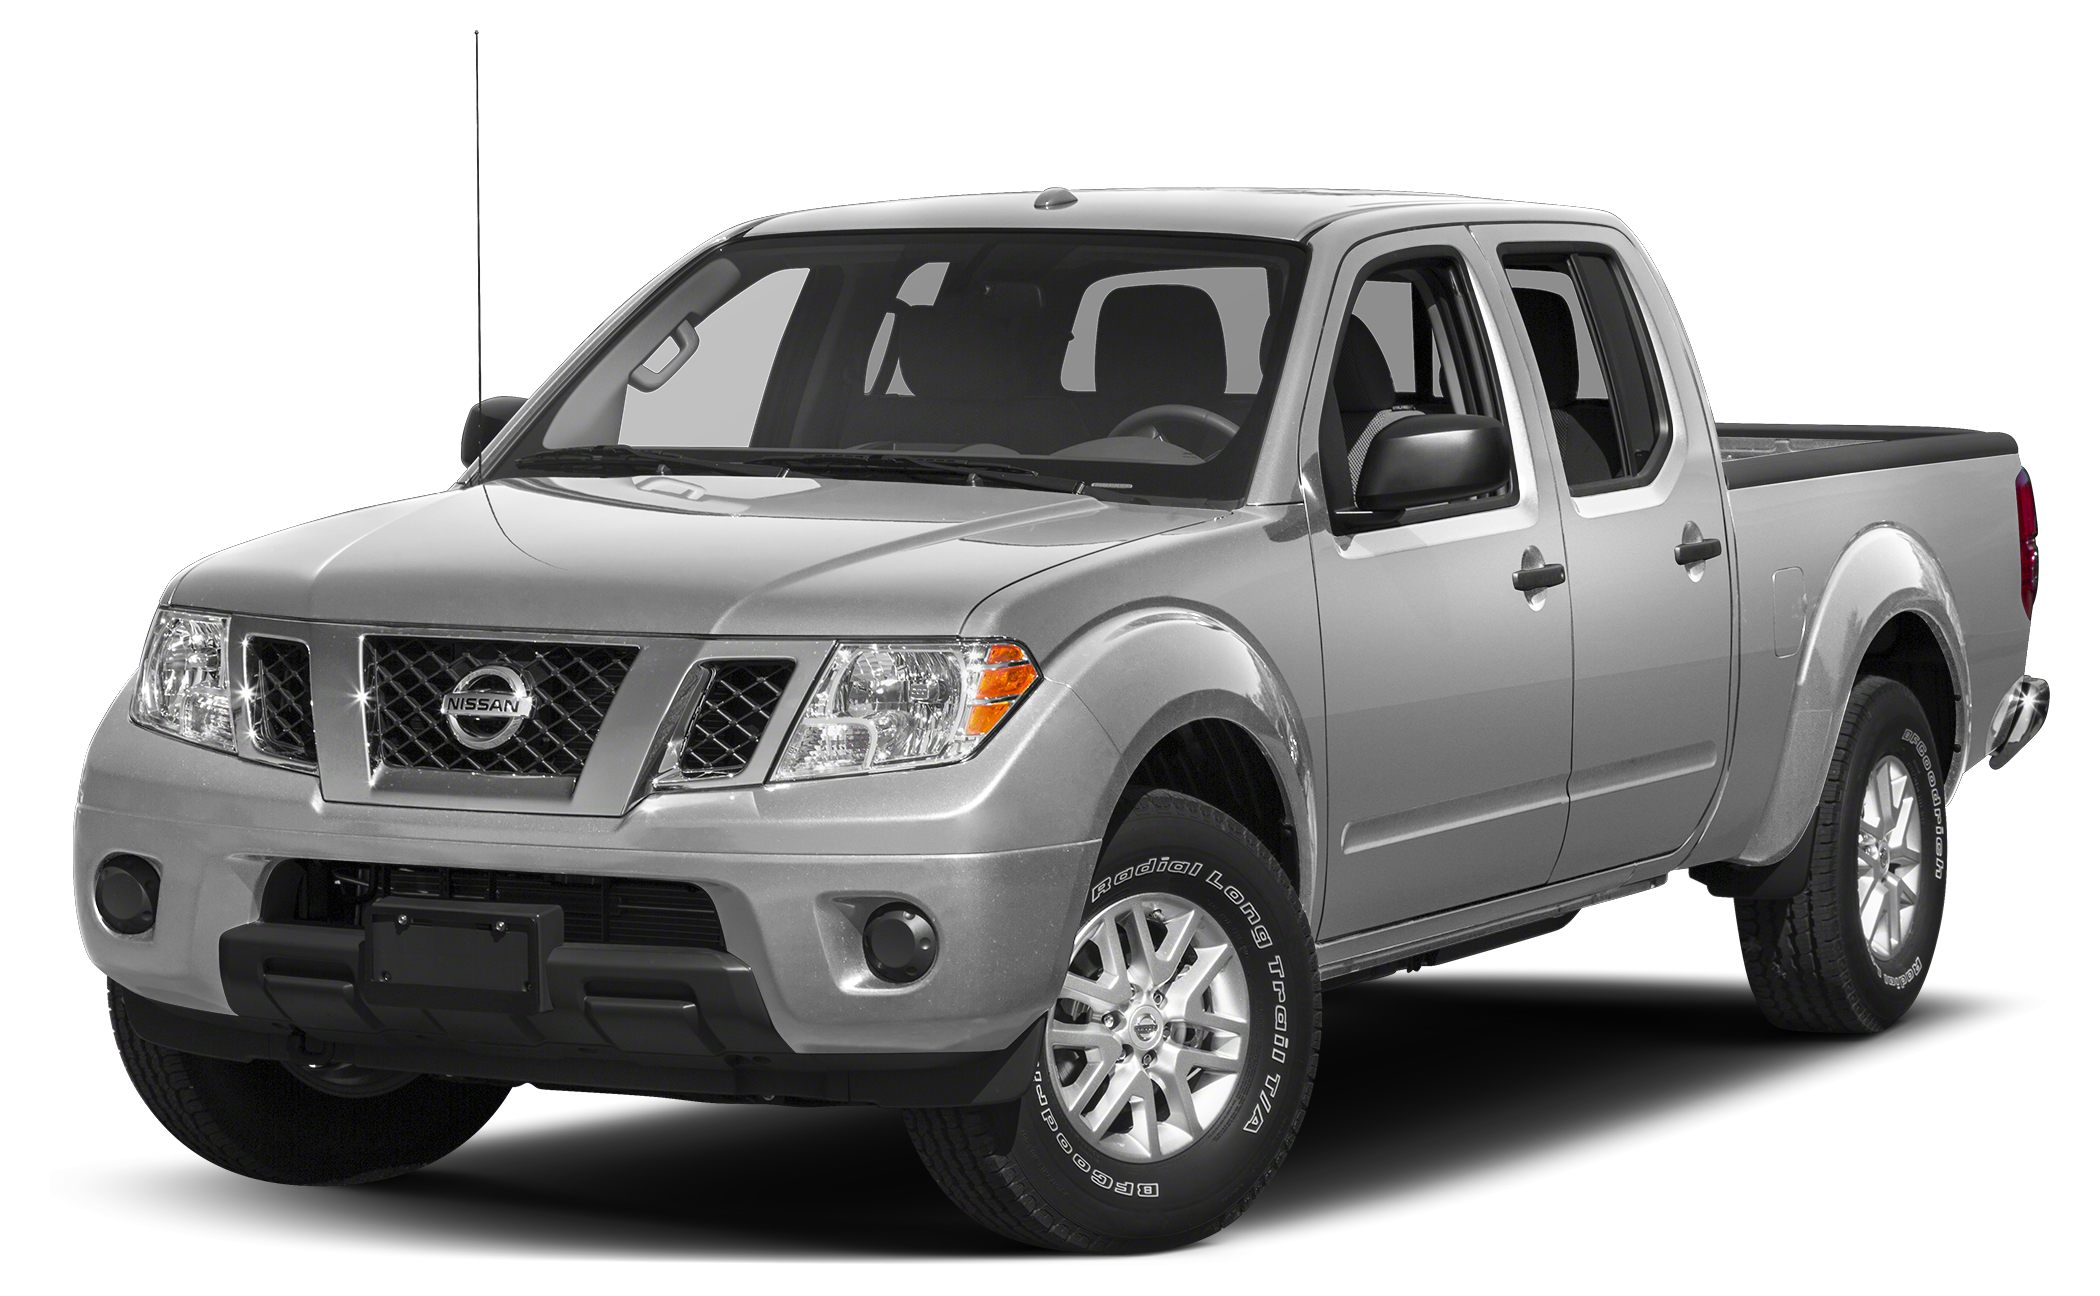 2015 Nissan Frontier S Beautiful FULLY LOADED 2015 Nissan Frontier equipped with the PRO-4X packa